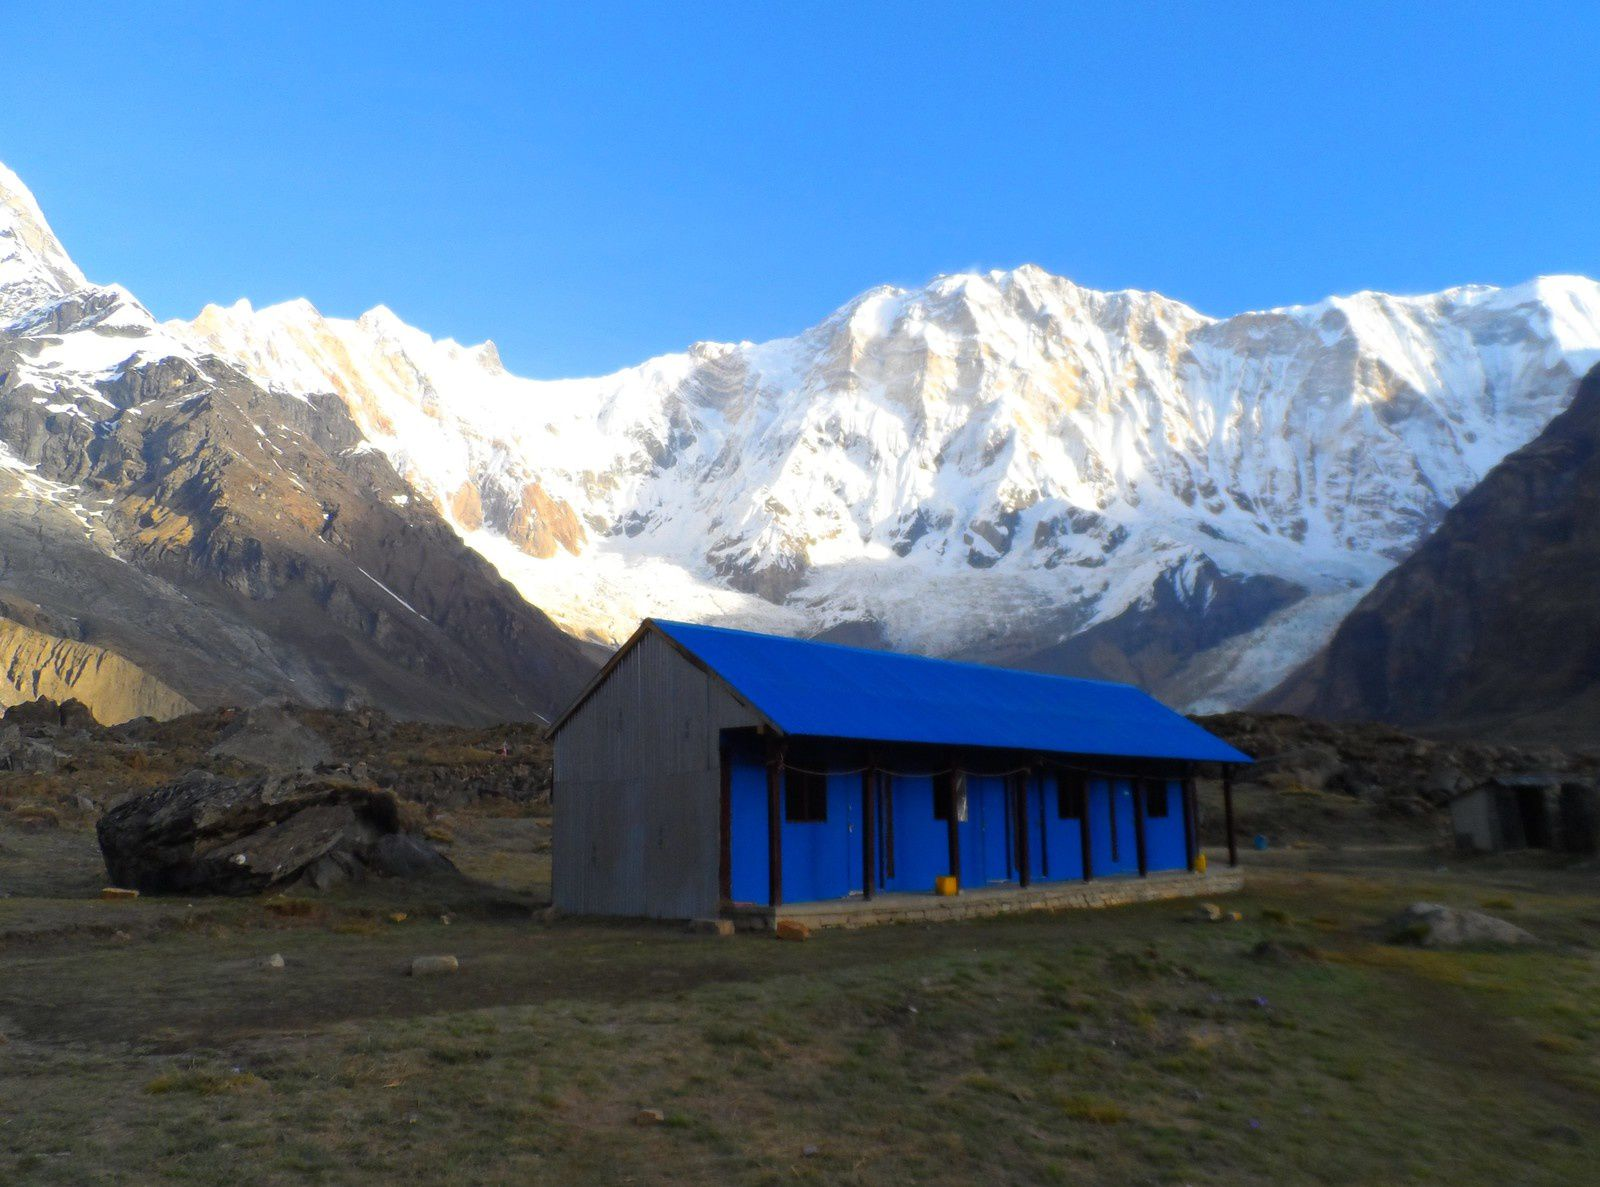 Le camp de base de l'Annapurna